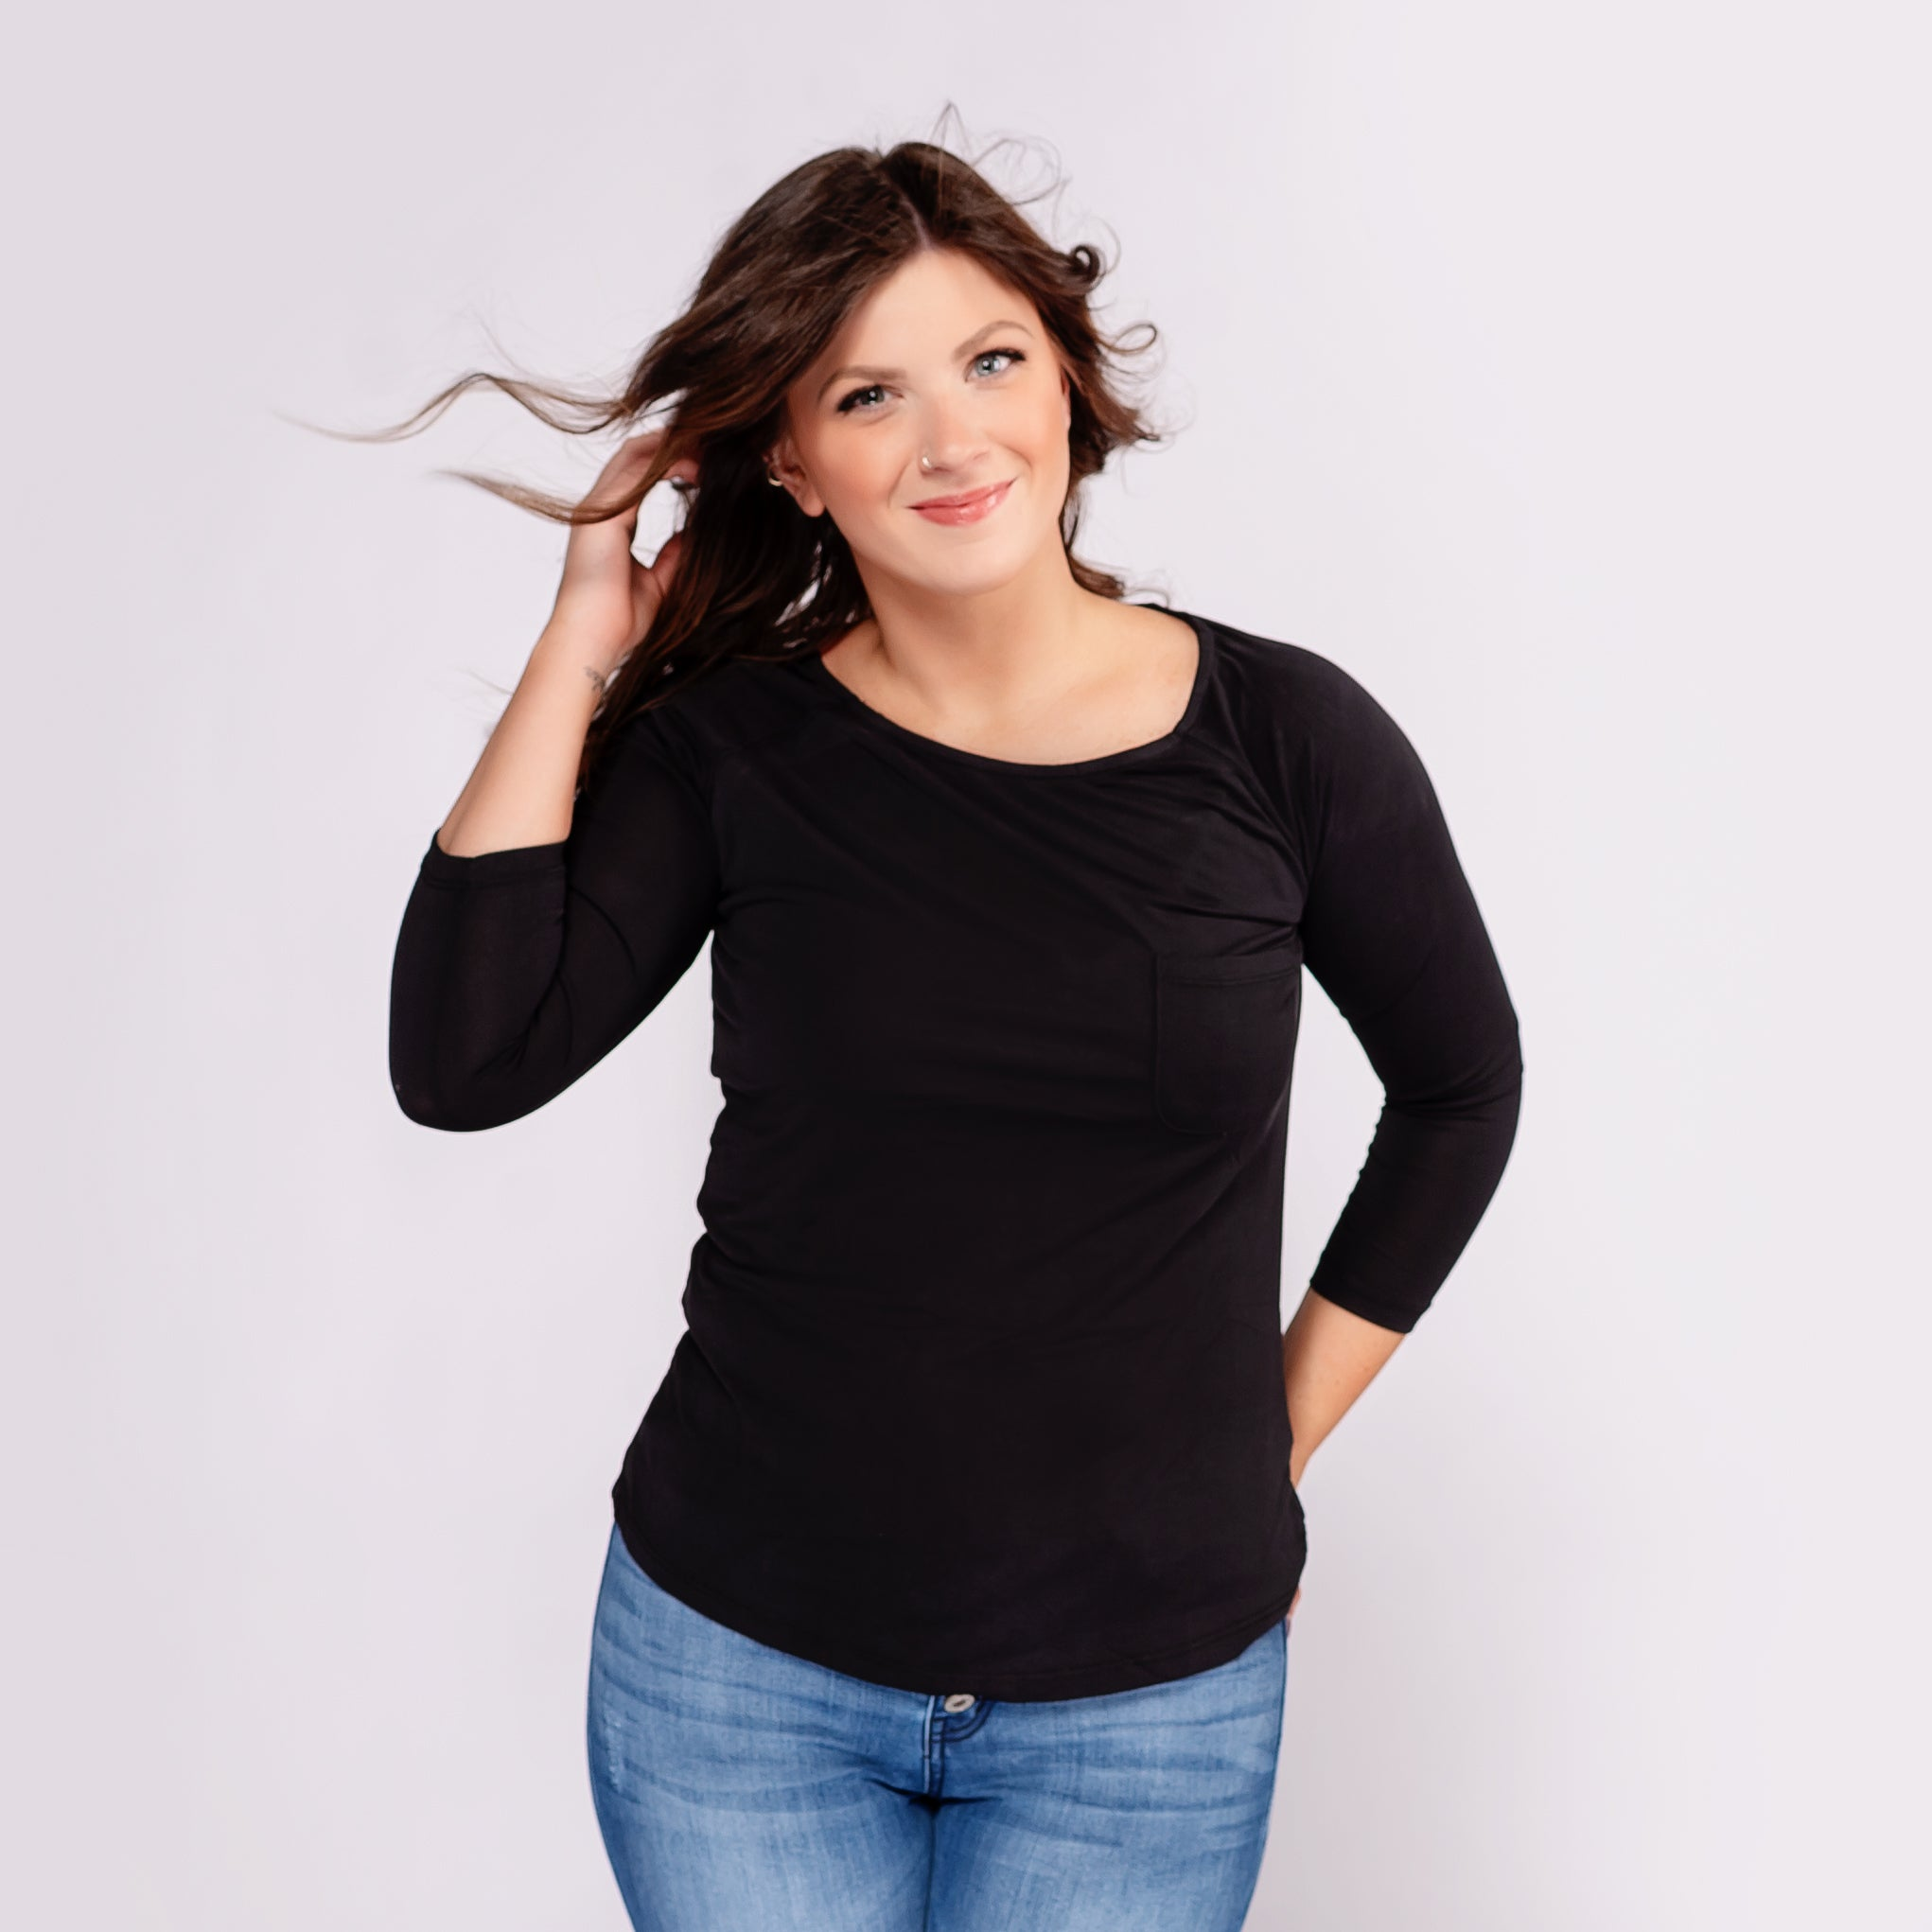 Nostalgia 3/4 Sleeve Top with Front Pocket *Final Sale*